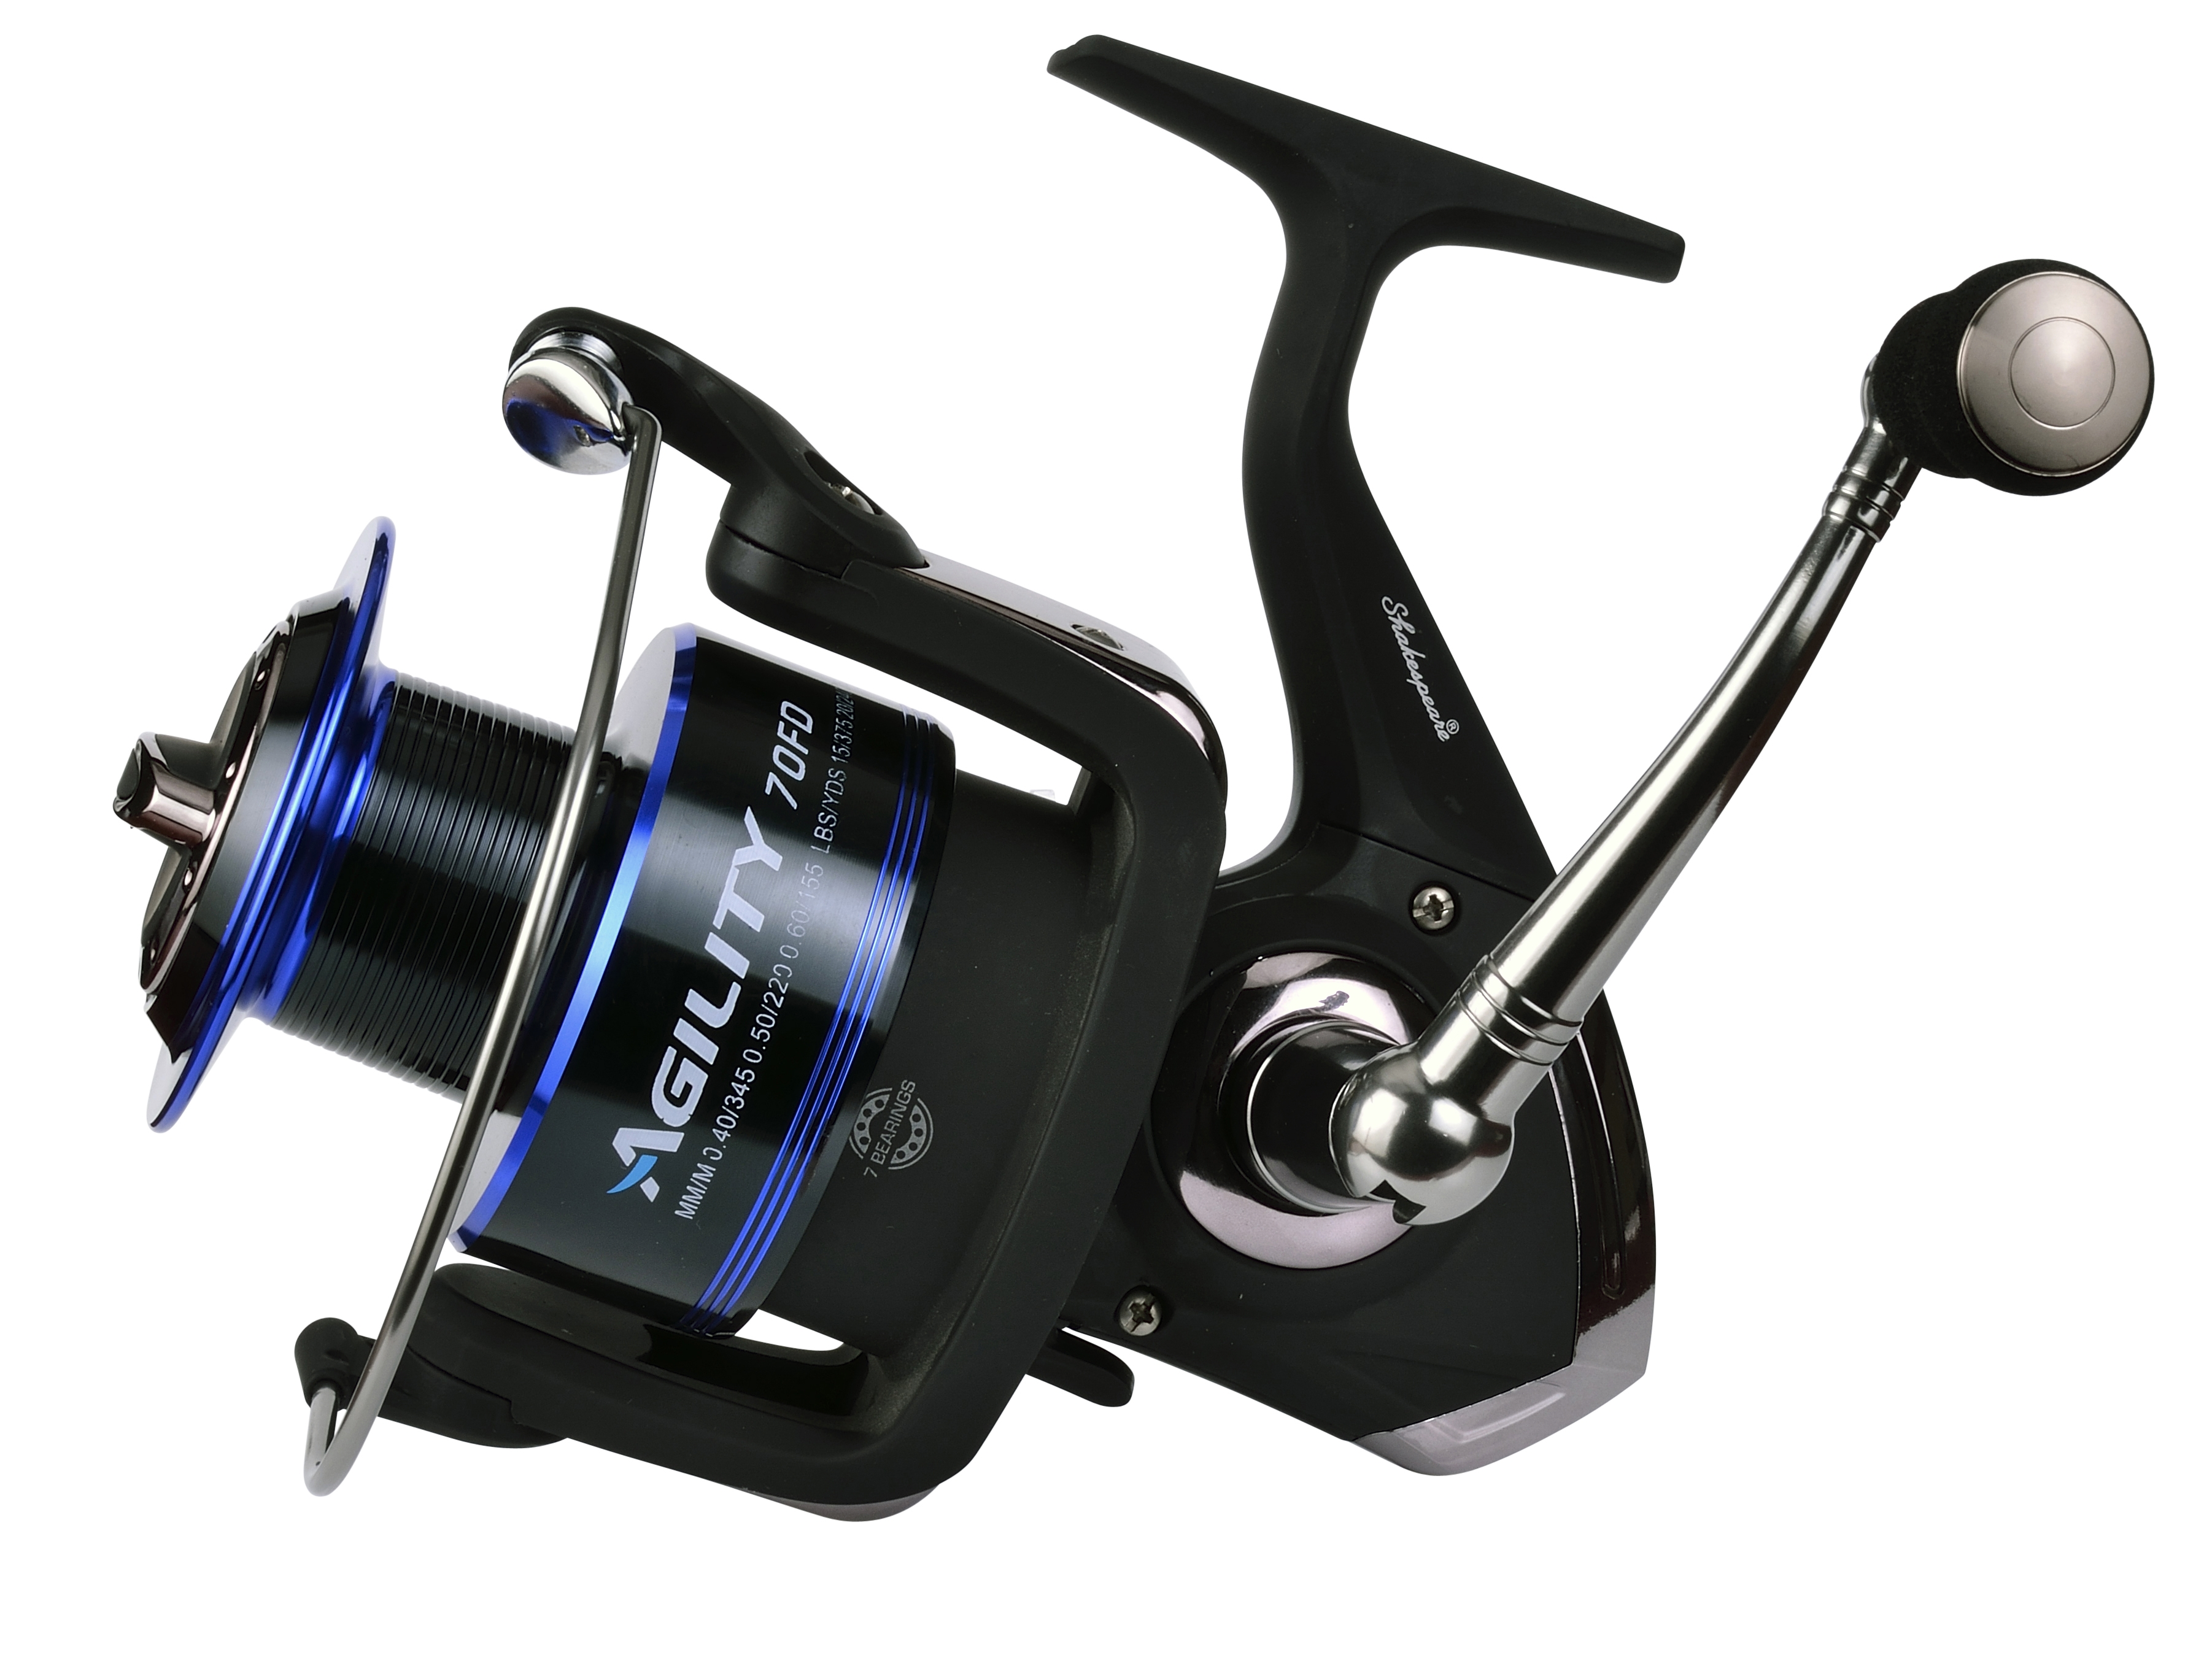 Shakespeare Agility Fixed Spool Reels - Glasgow Angling Centre